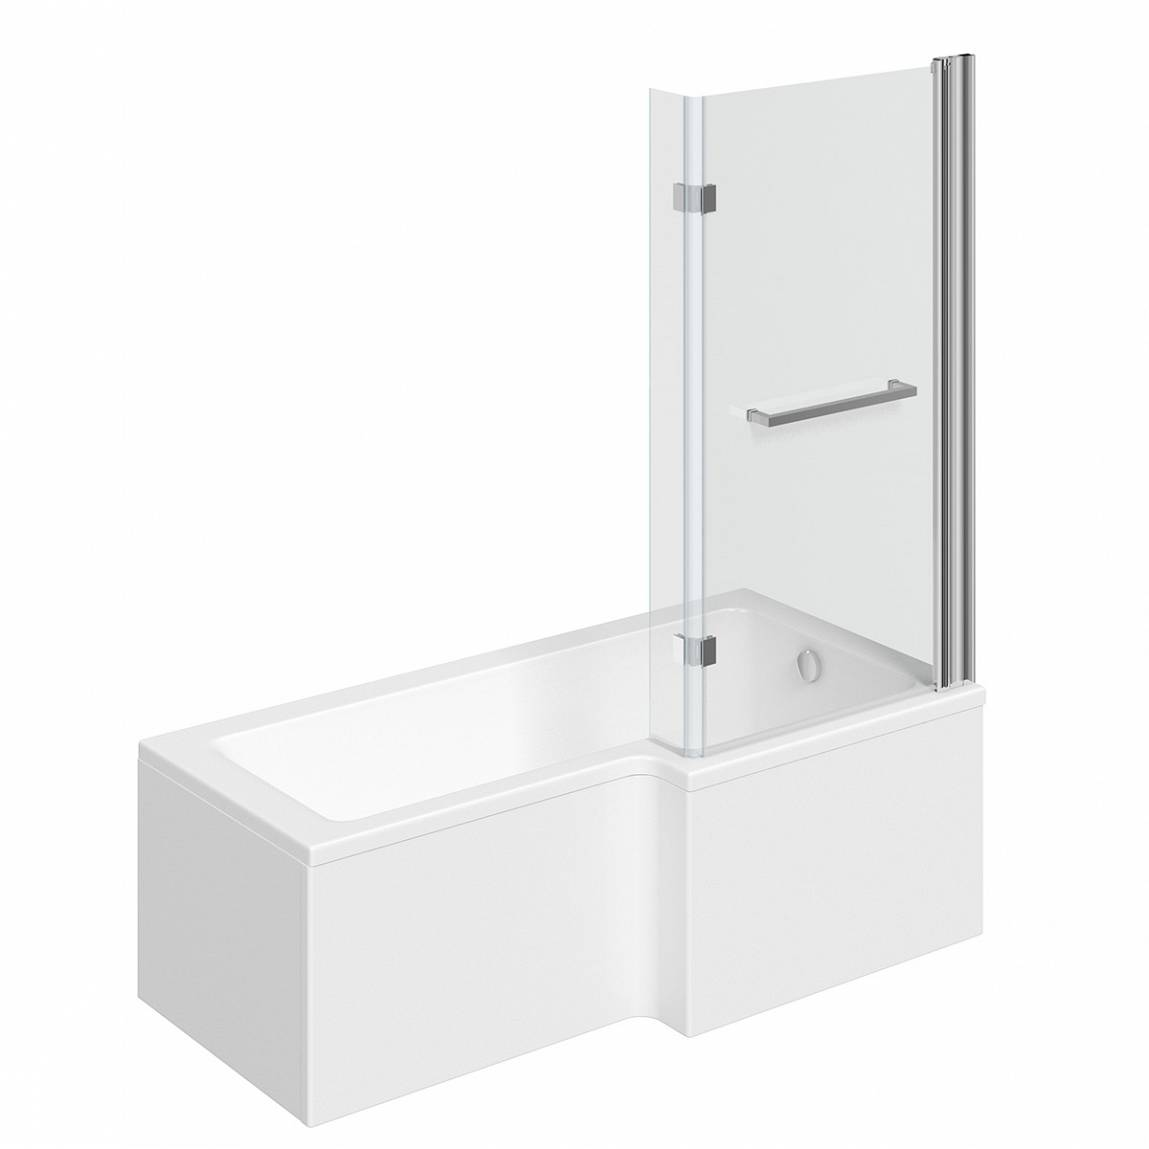 Image of Boston Shower Bath 1500 x 850 RH with 8mm Hinged Screen with Towel Rail